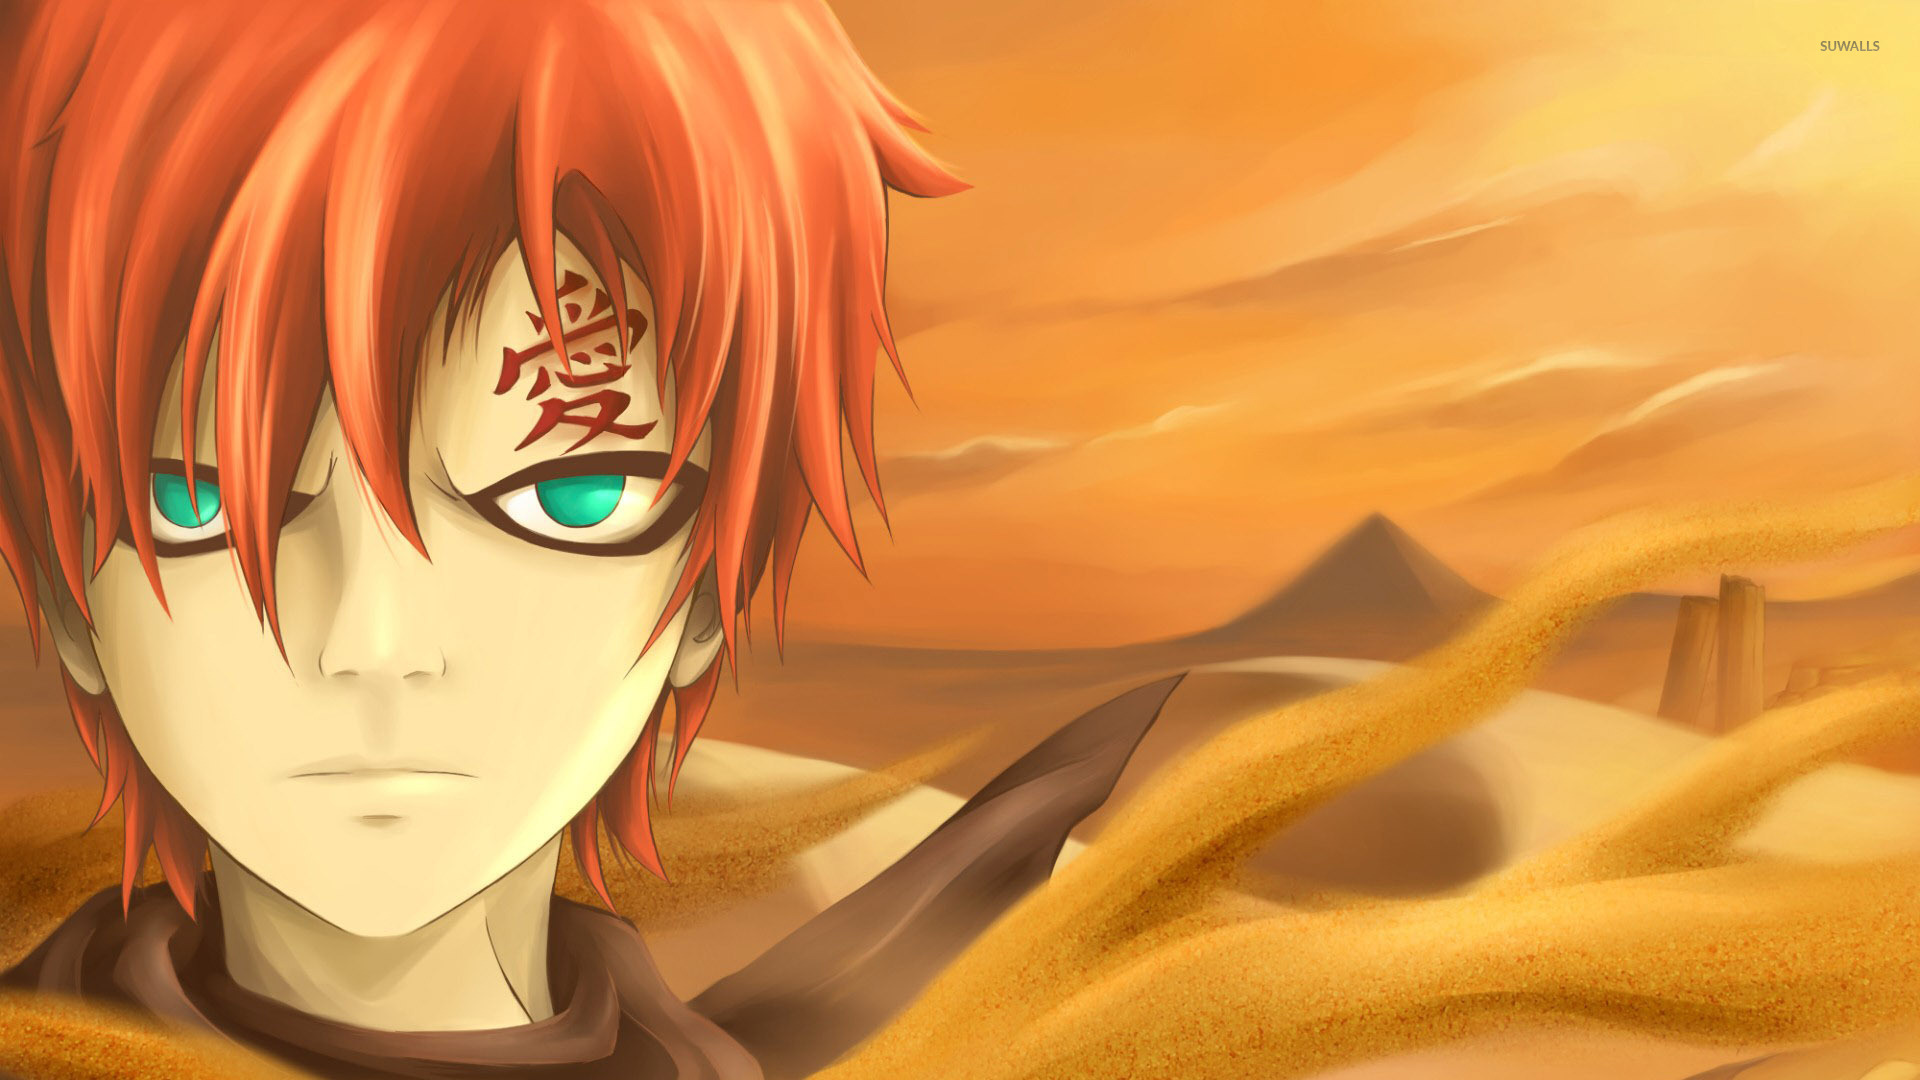 naruto and gaara wallpaper - photo #28